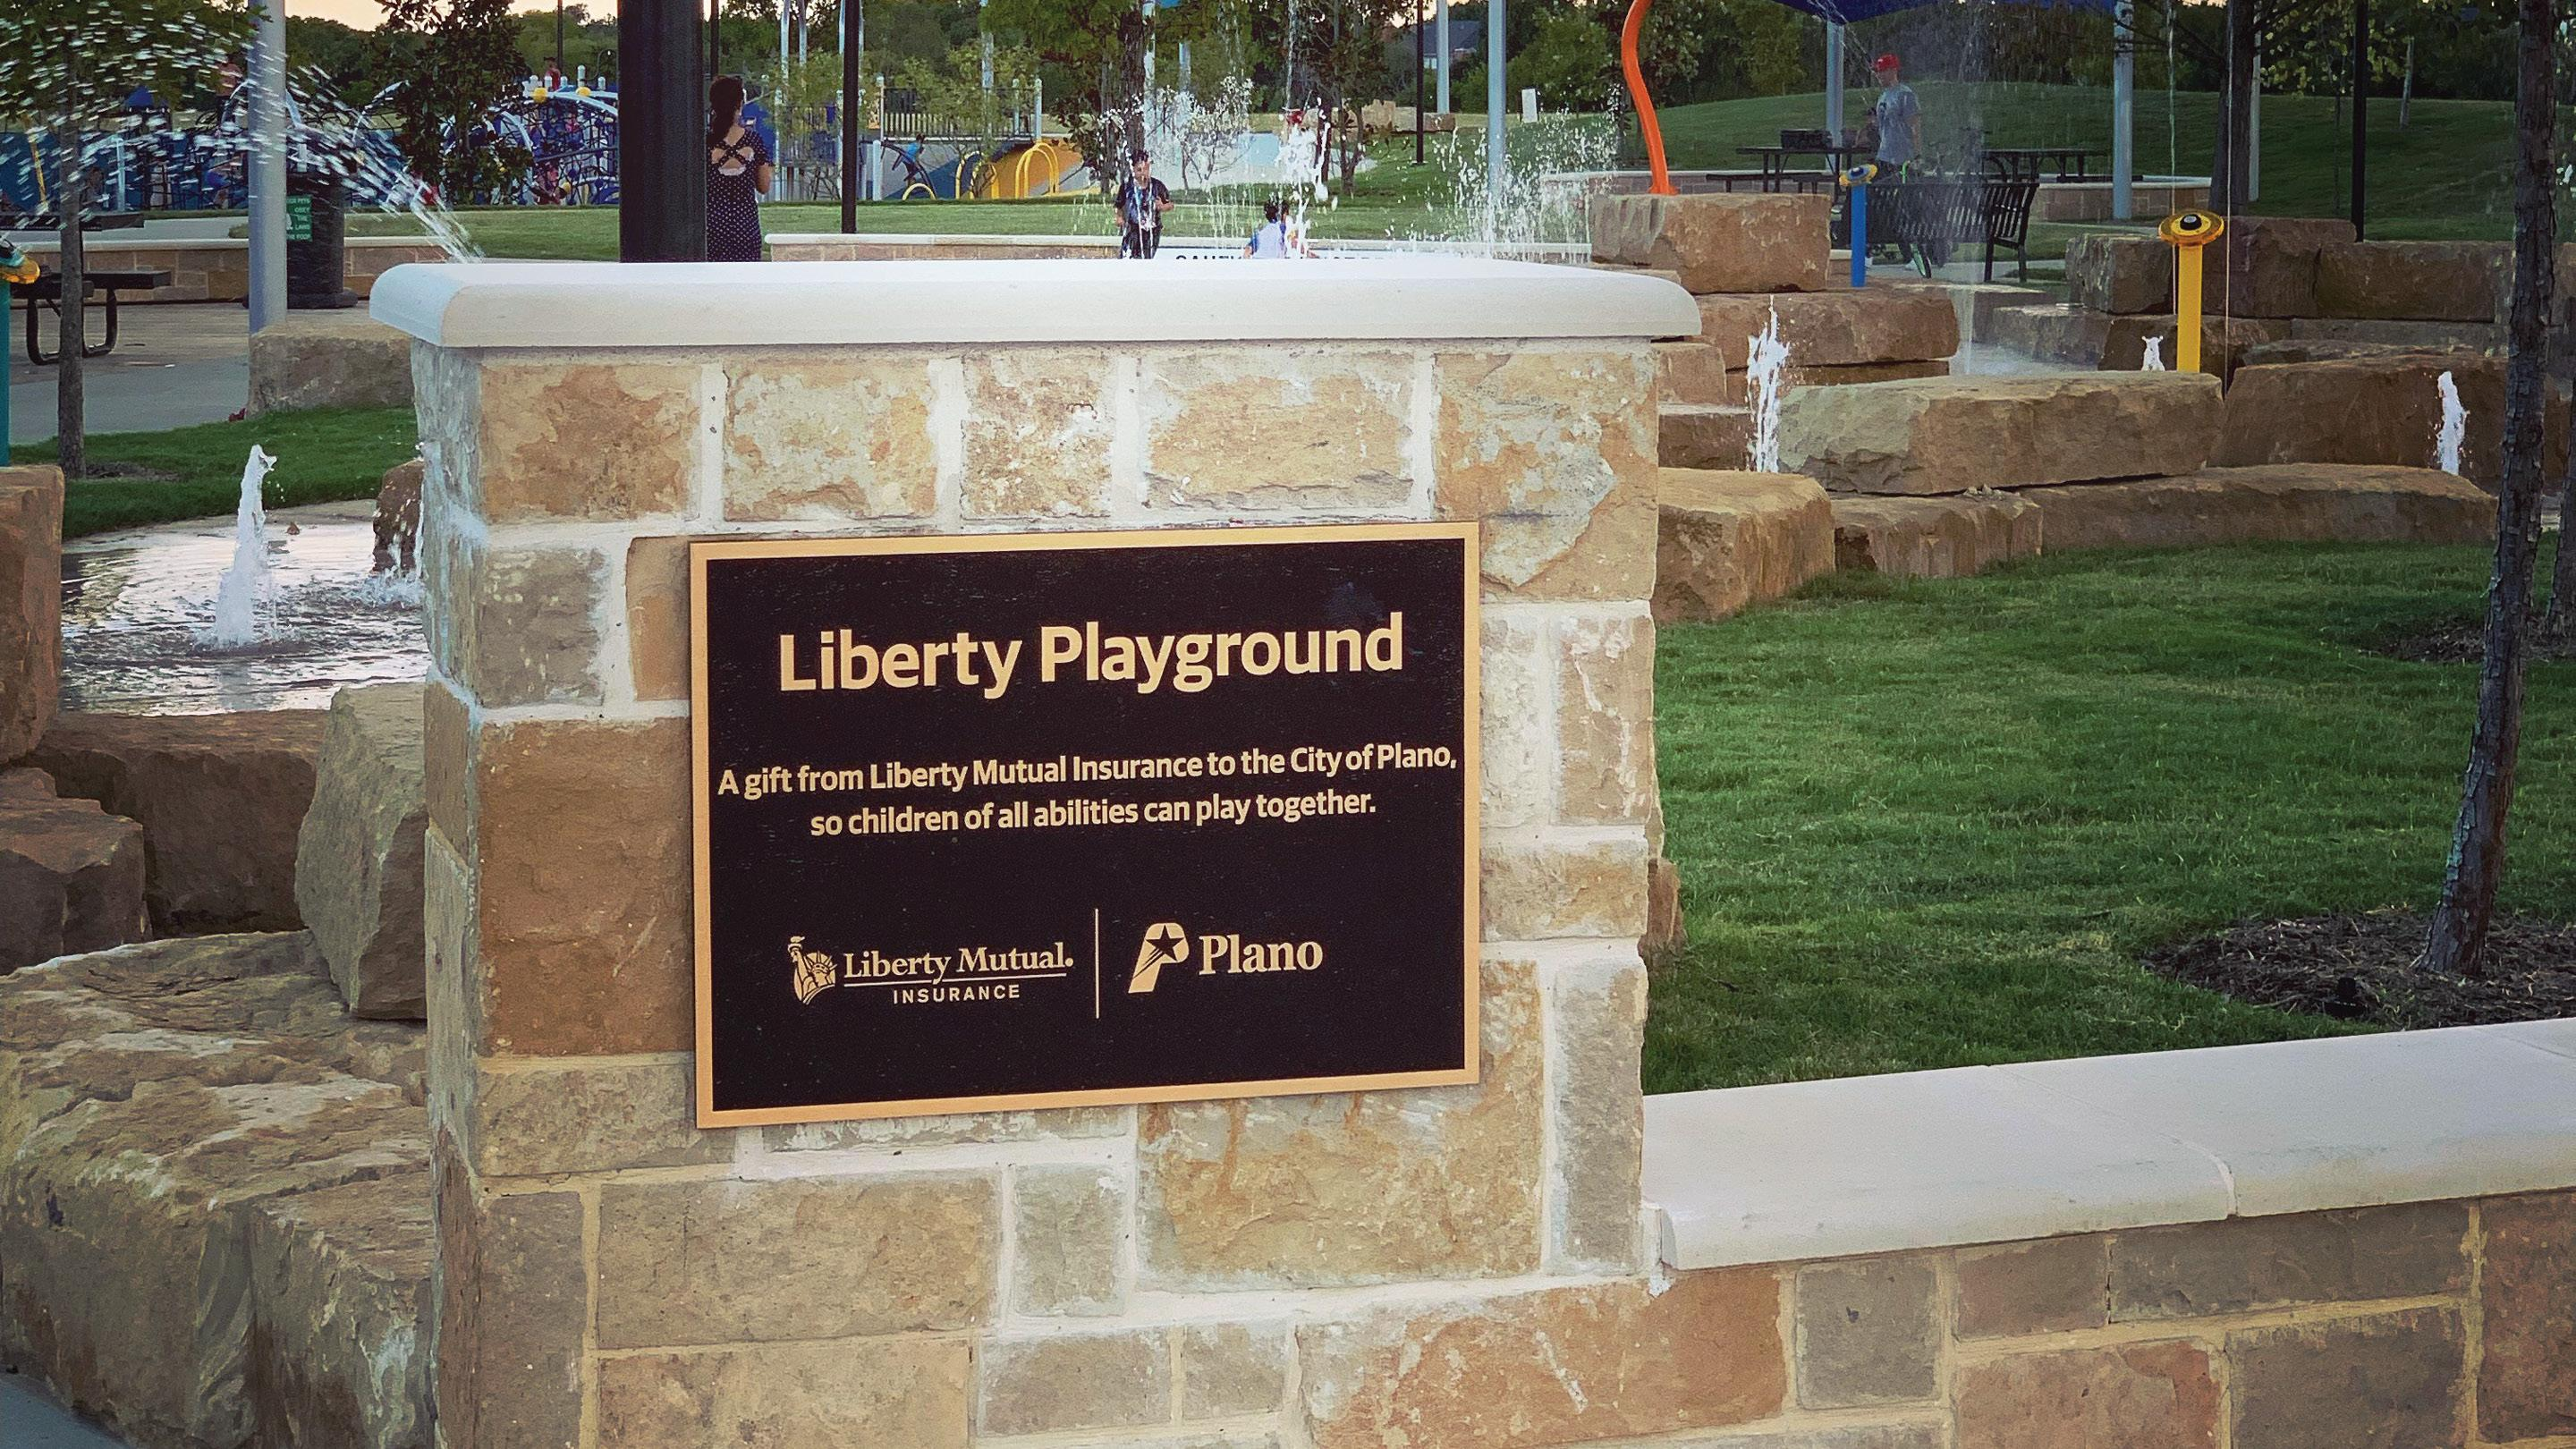 (slide 4 of 8) Image of Liberty Playground sign.